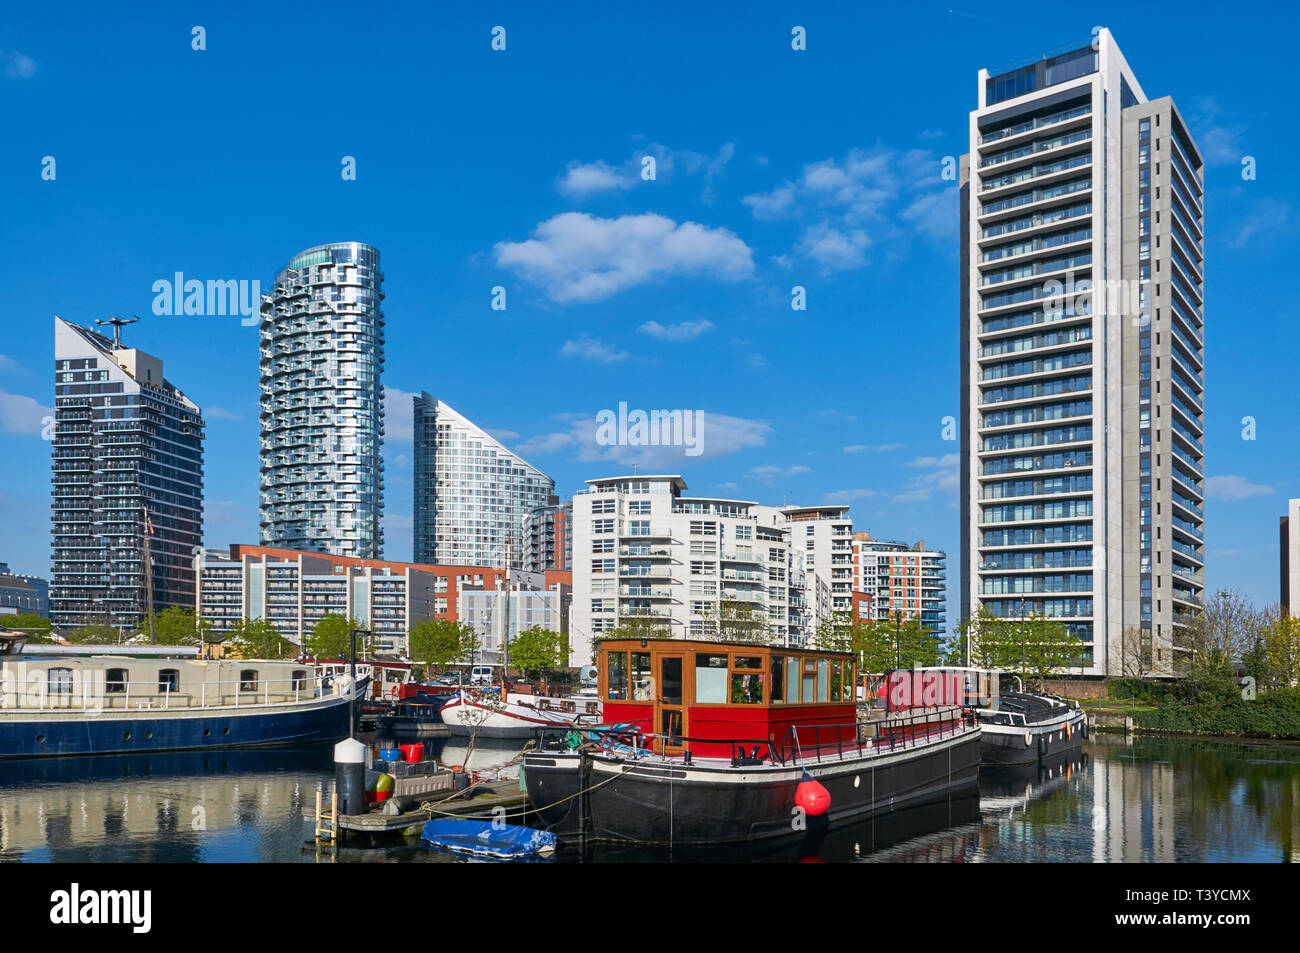 Poplar Dock Marina in London Docklands, with moored vessels and new apartment buildings - Stock Image